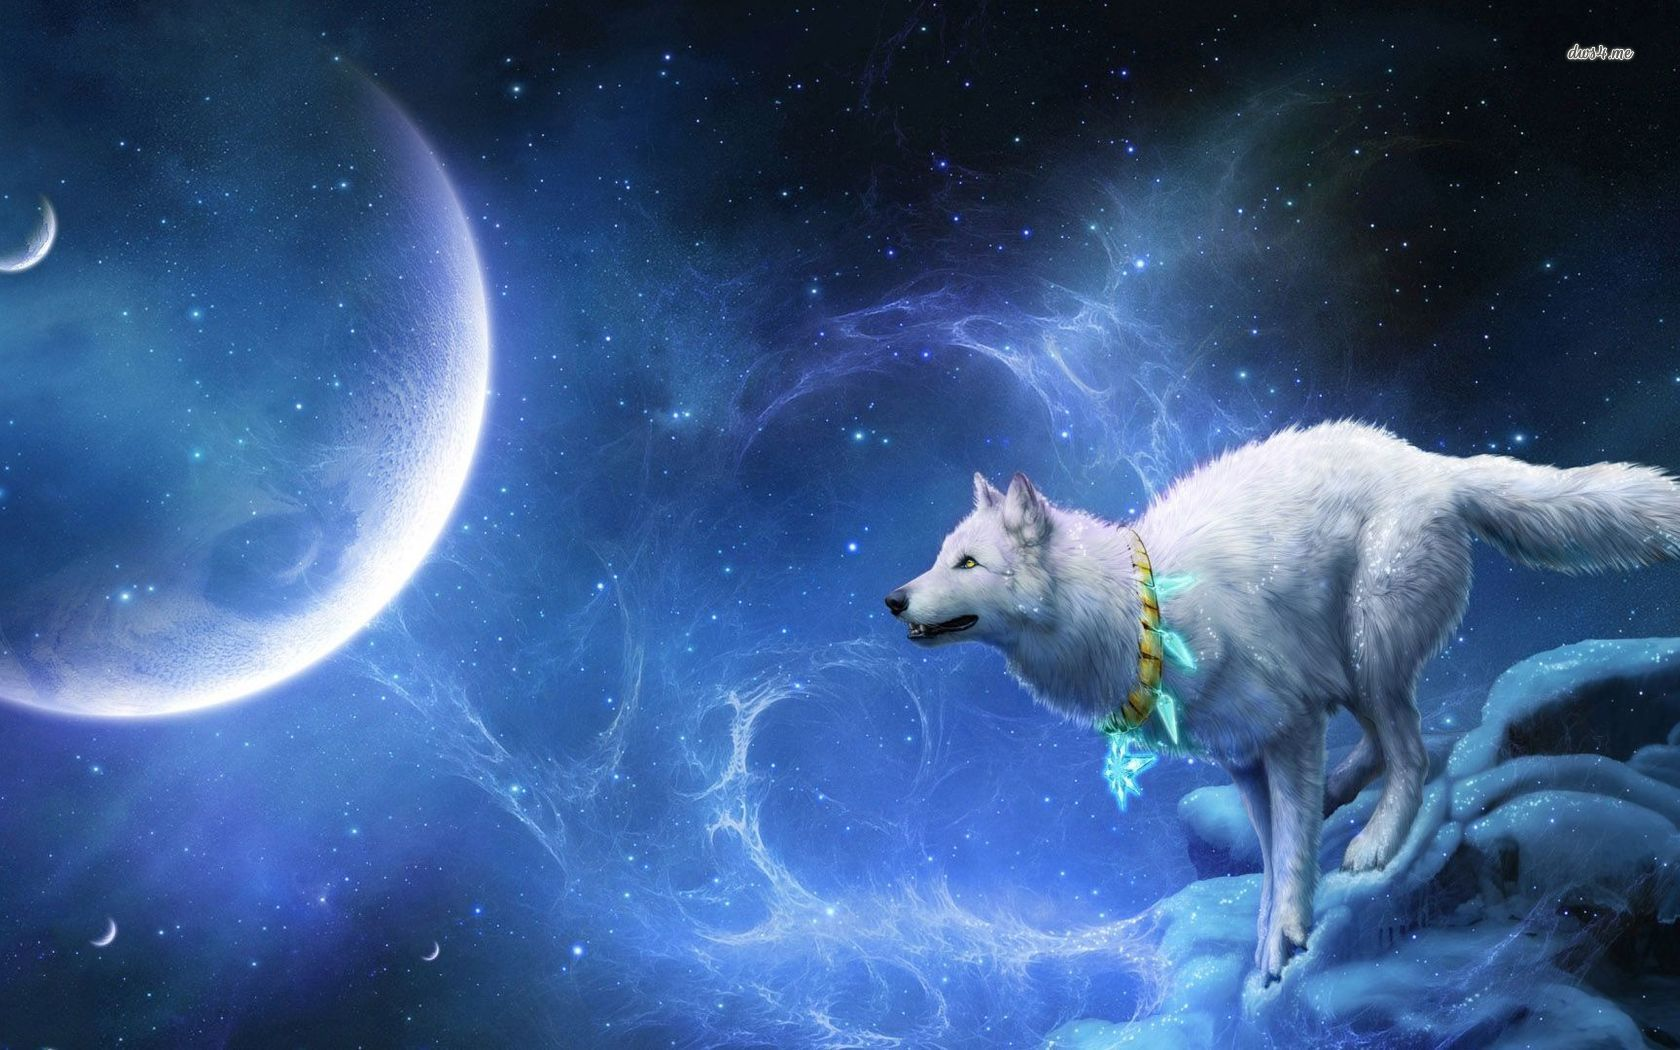 28672-wolf-looking-at-big-moon-1680x1050-fantasy-wallpaper.jpg